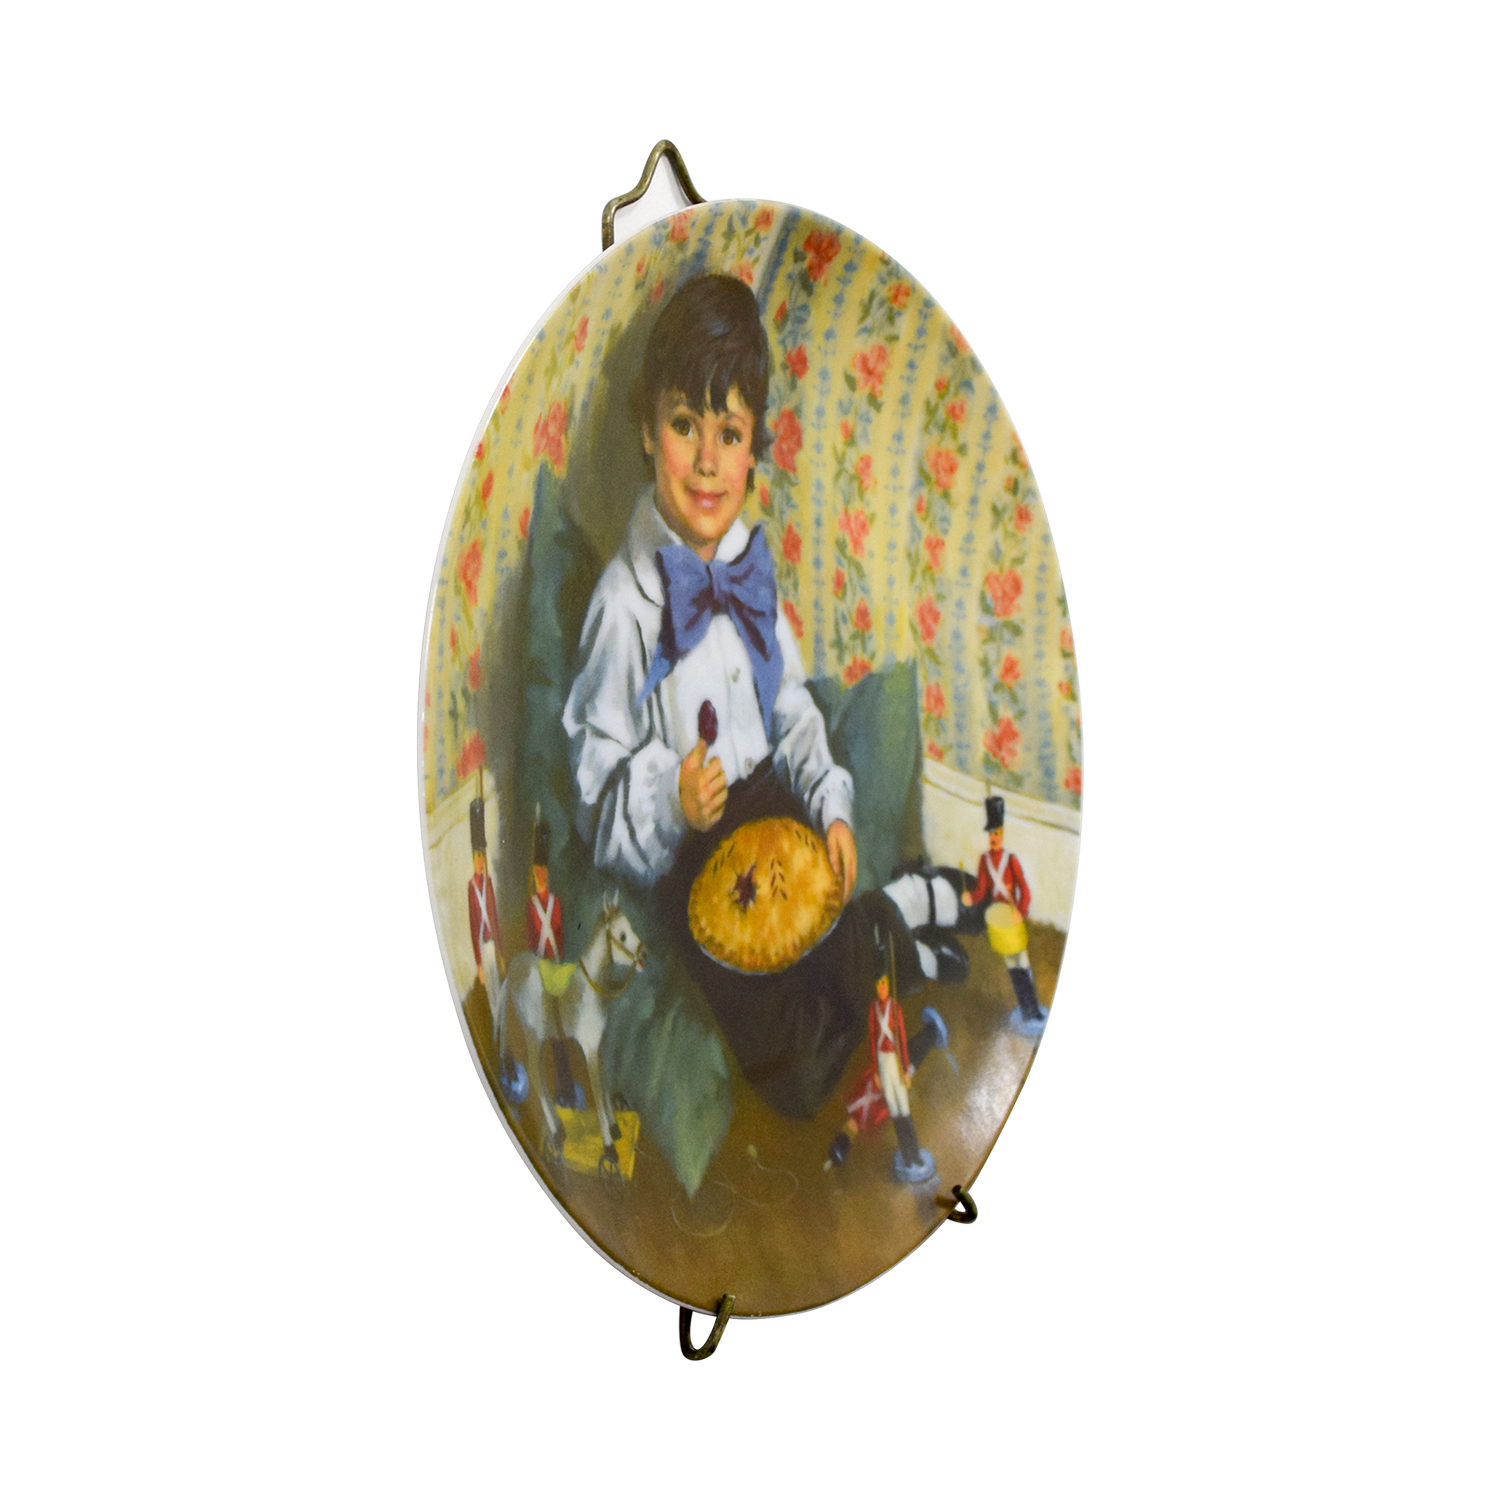 Edward M. Knowles Edward M. Knowles Norman Rockwell Little Jack Horner Plate price